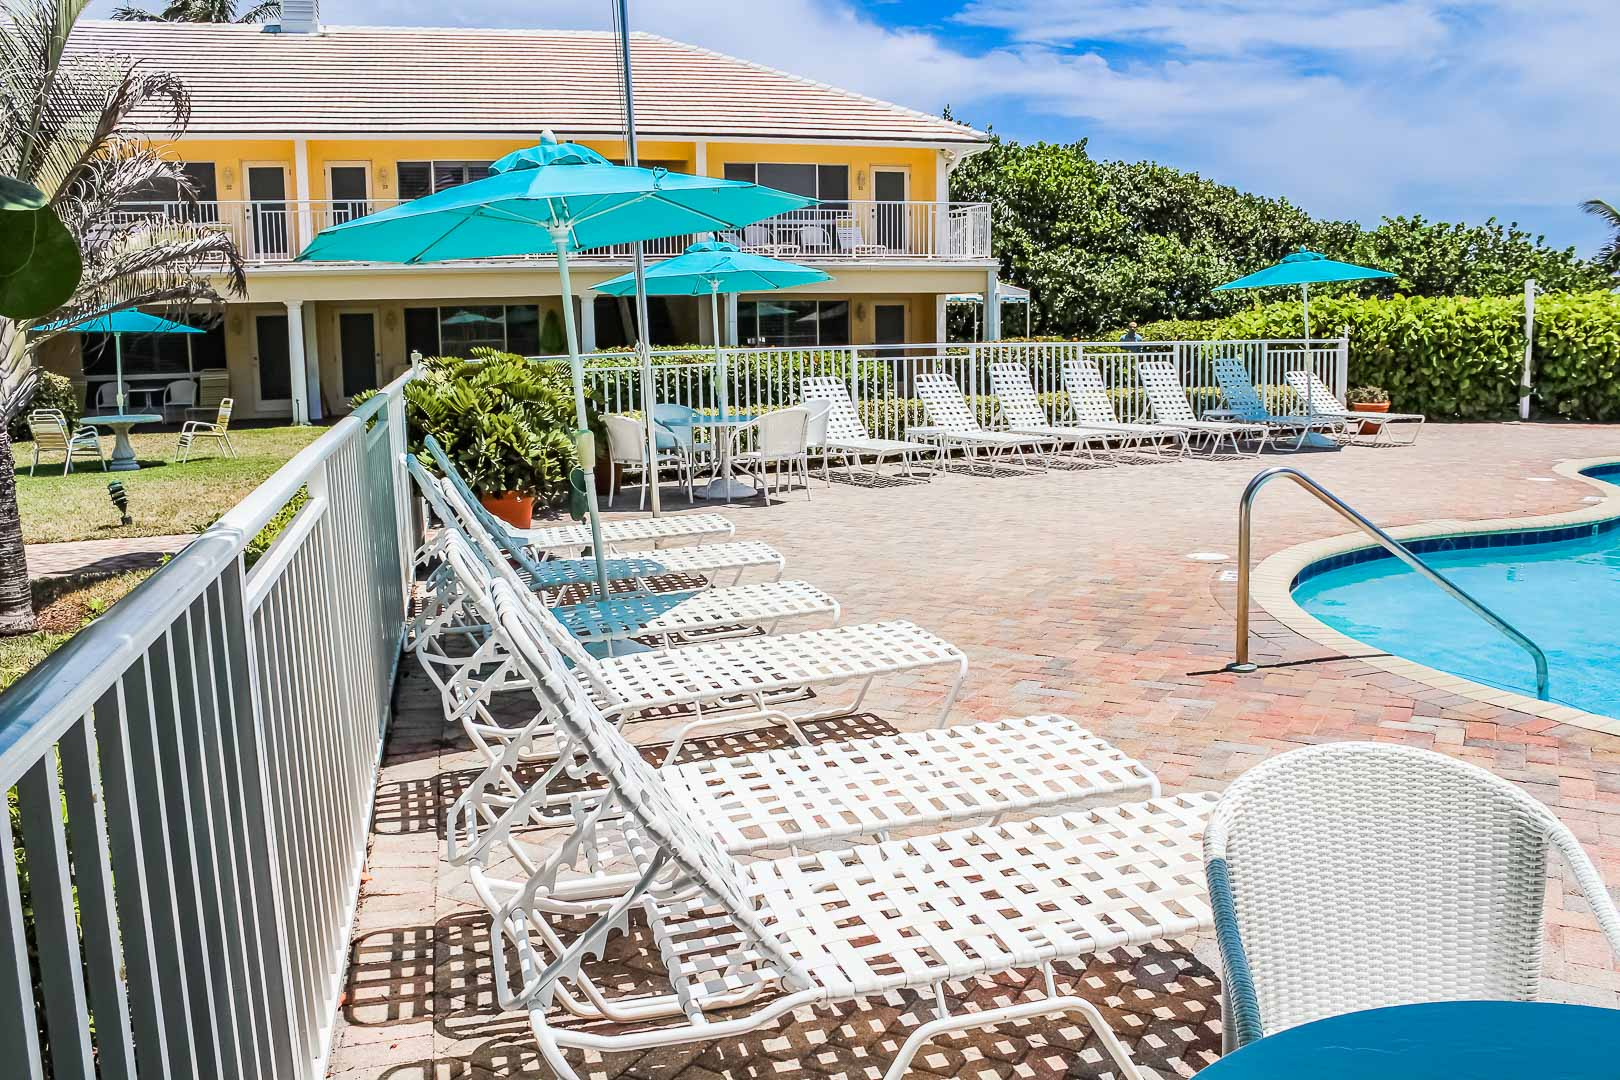 A relaxing swimming pool at VRI's Berkshire on the Ocean in Florida.